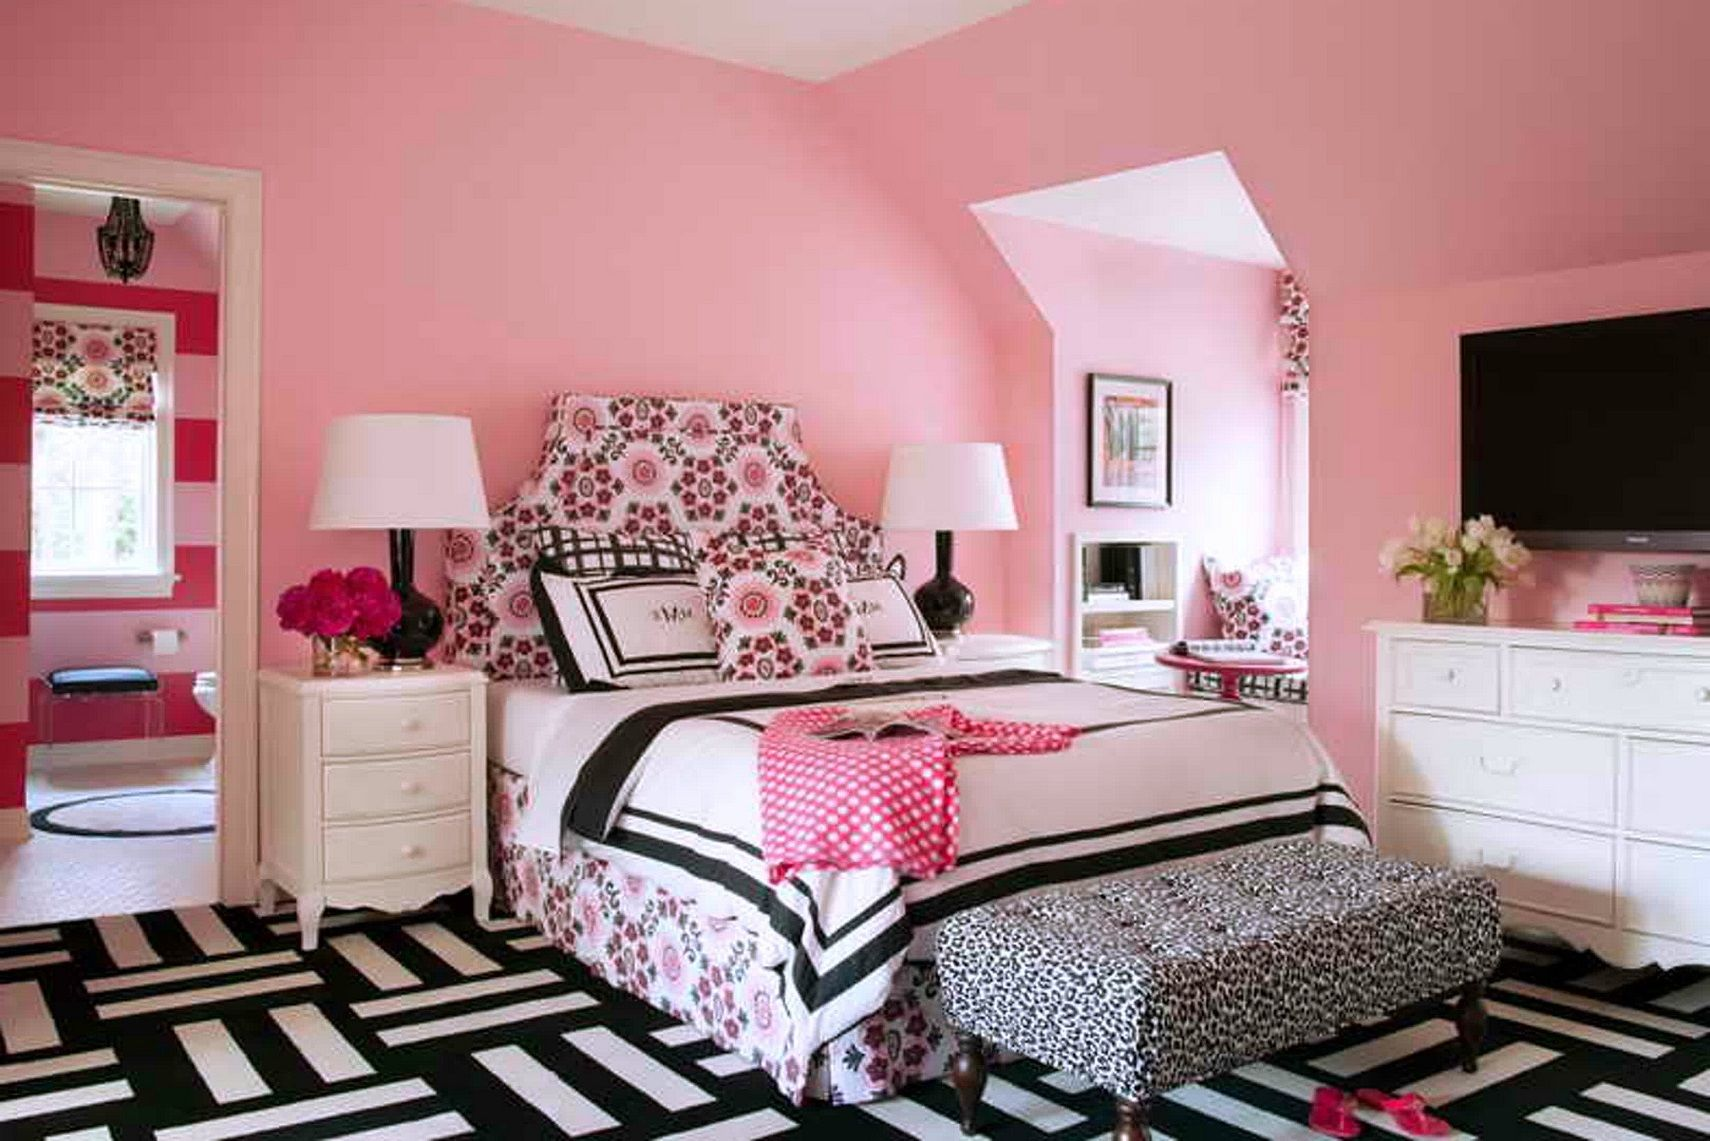 Teenage Girl Room Ideas to Show the Characteristic of the Owner